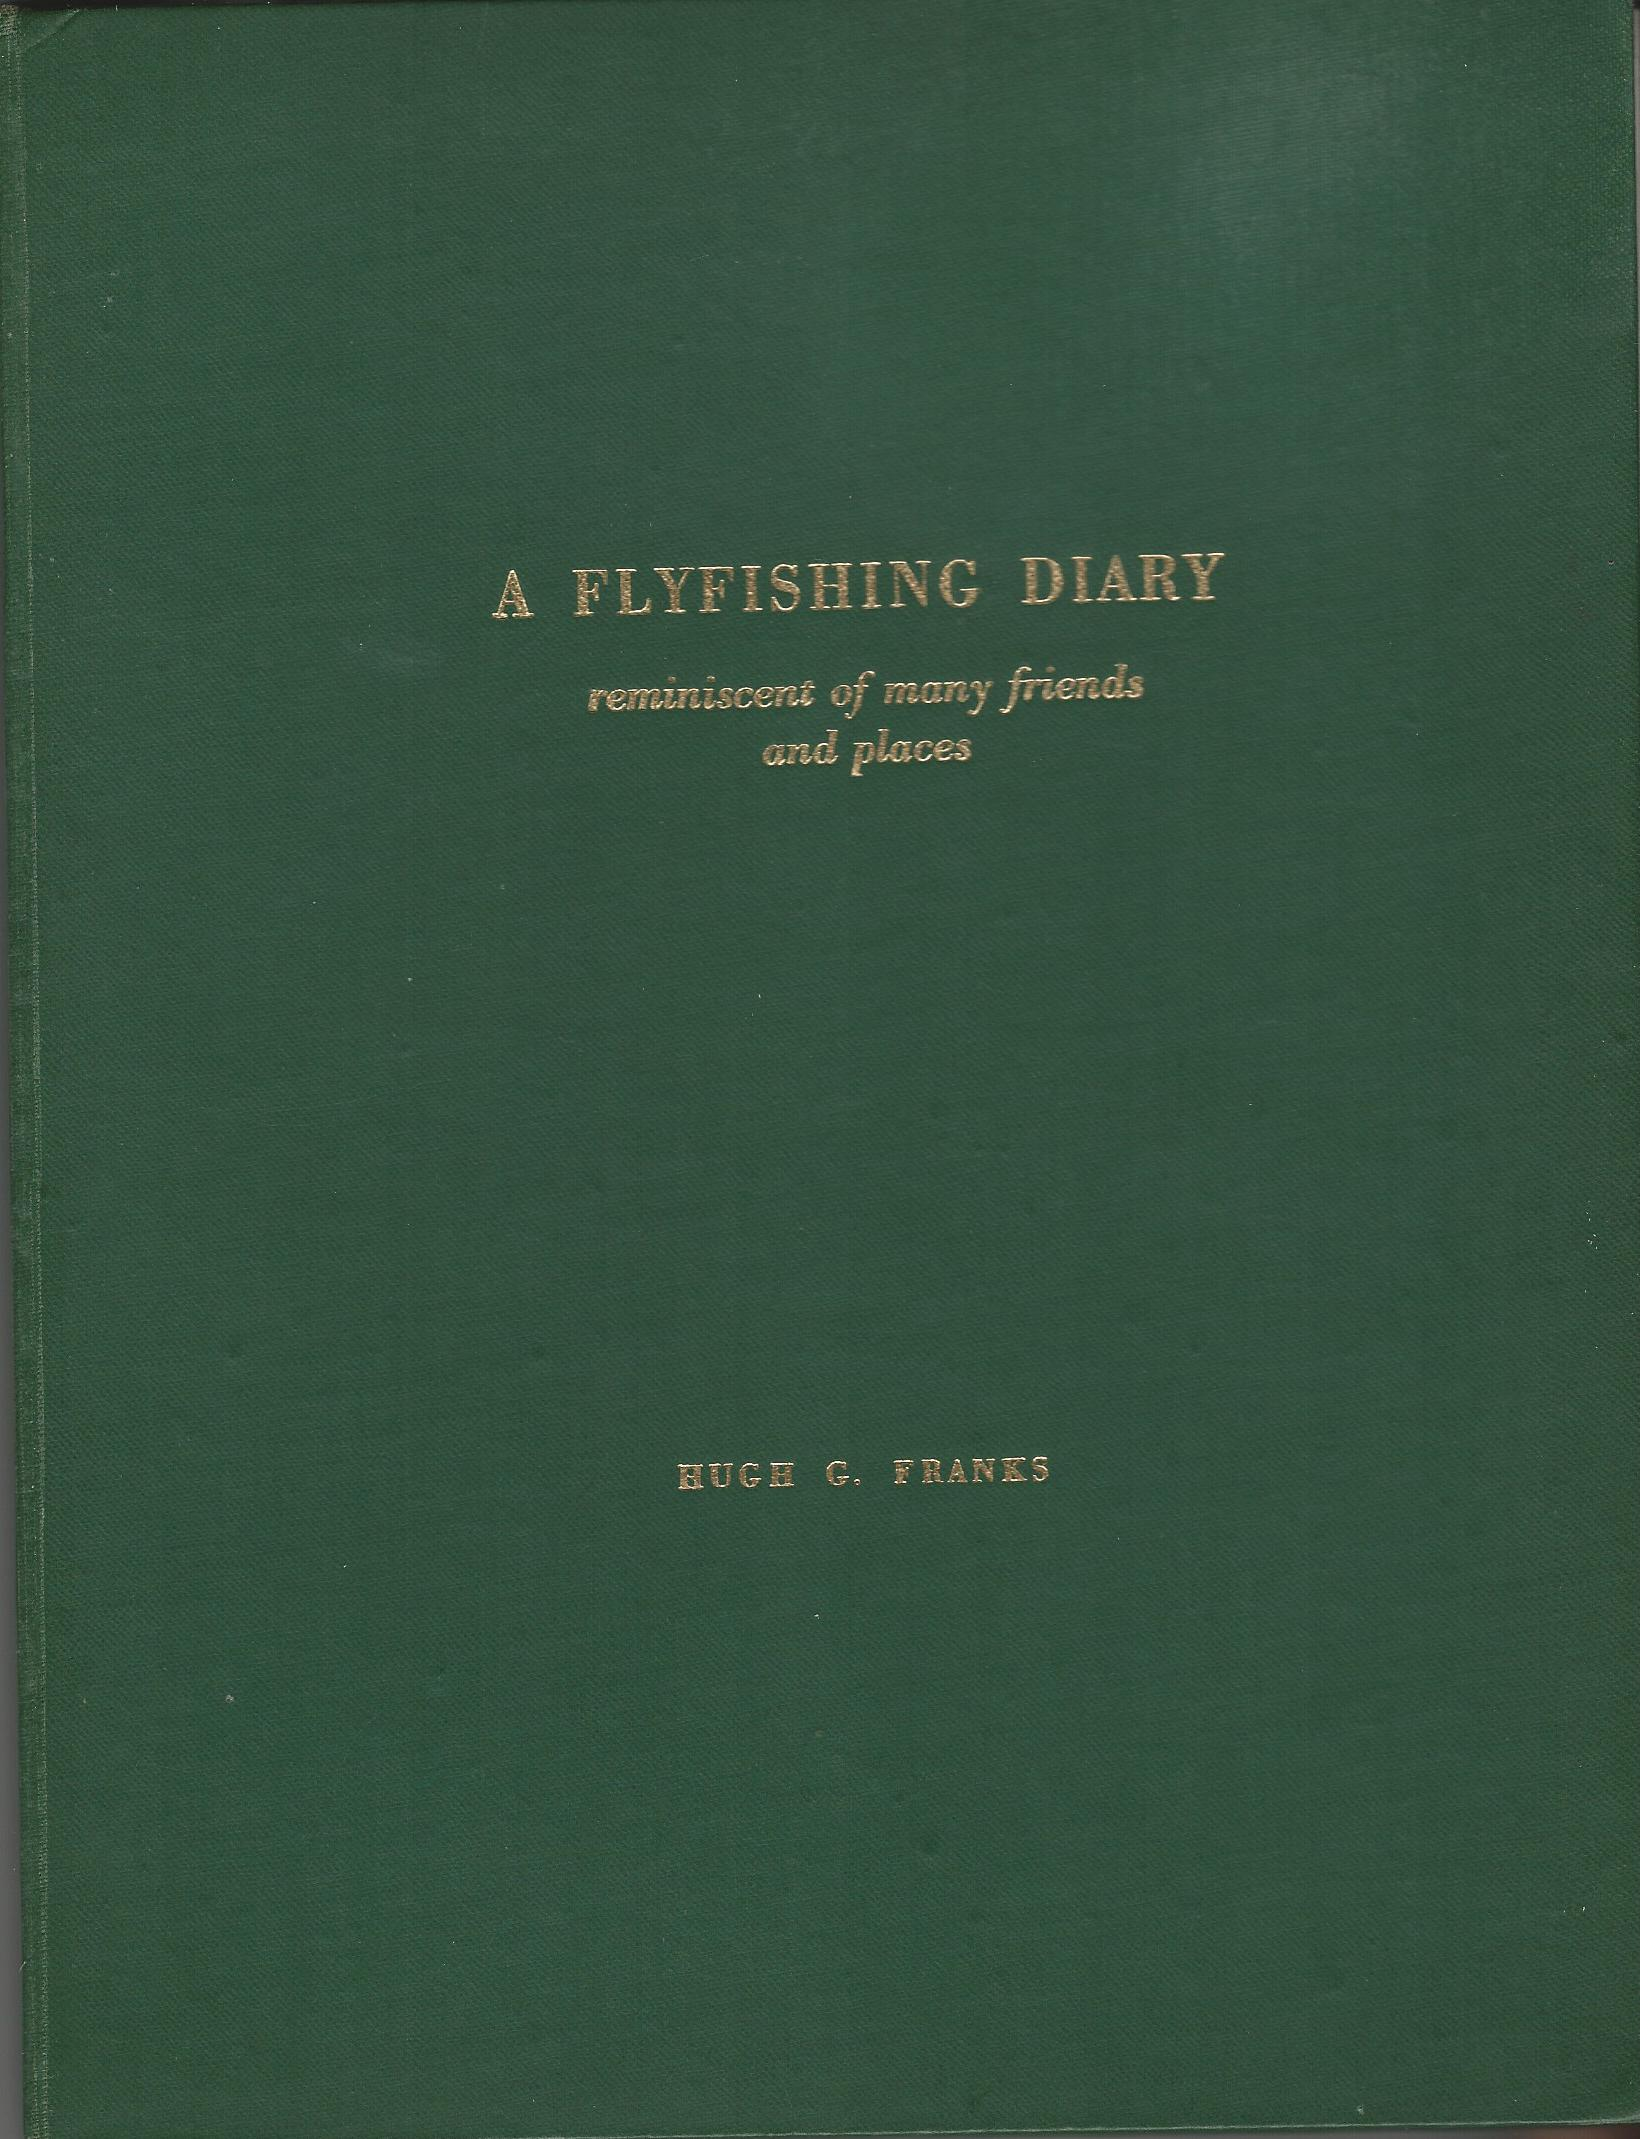 A Flyfishing Diary reminiscent of many friends and places.